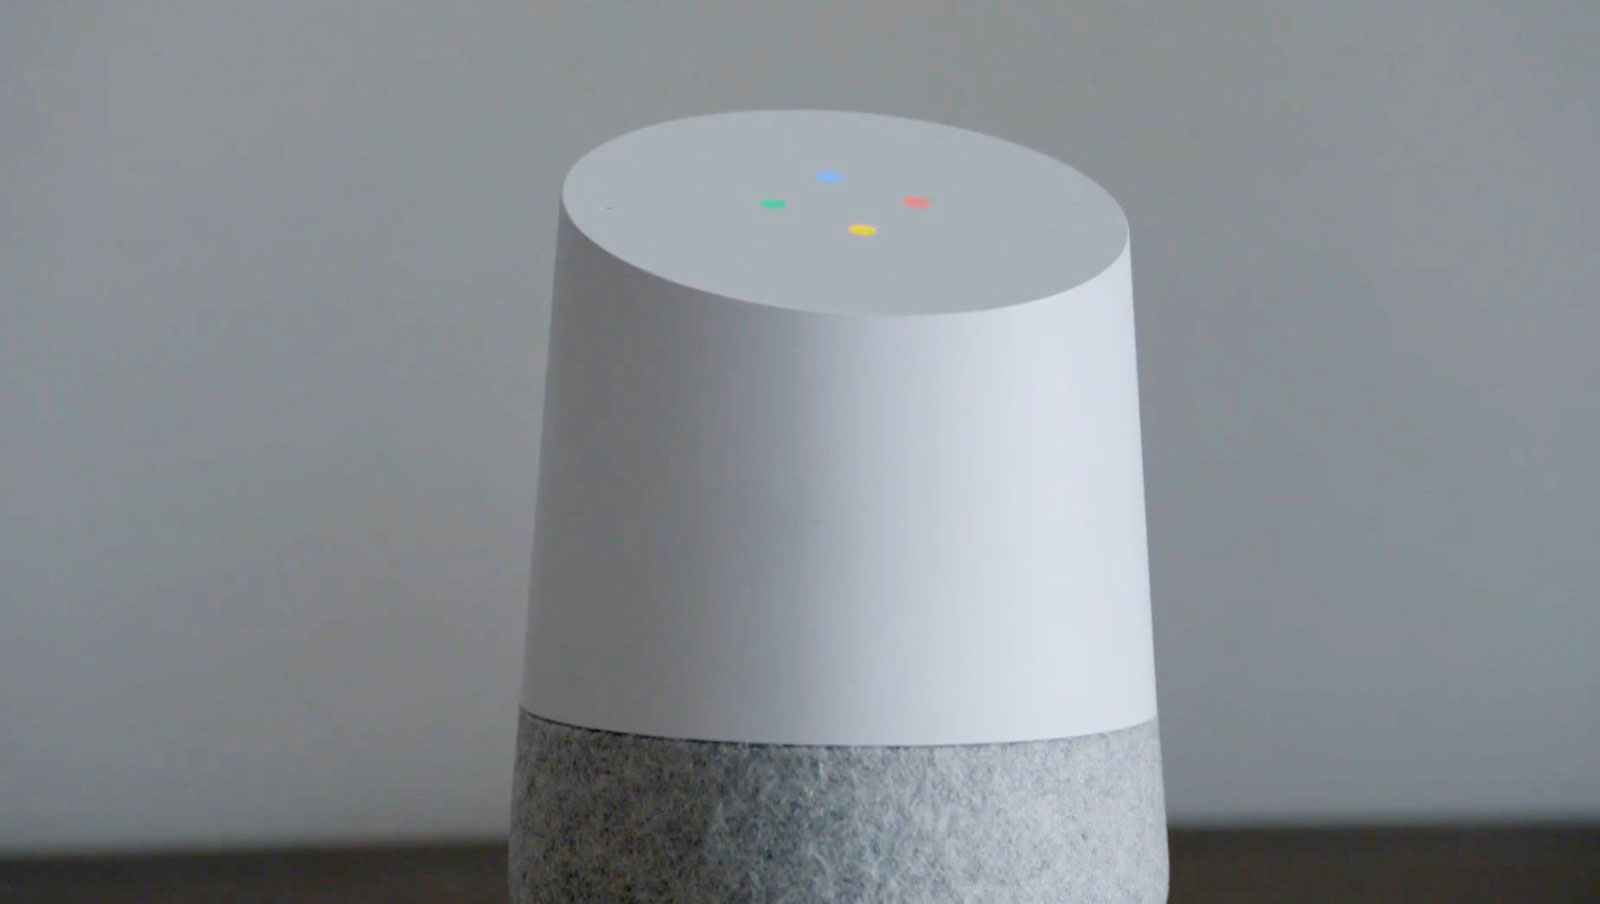 how to cook with google home